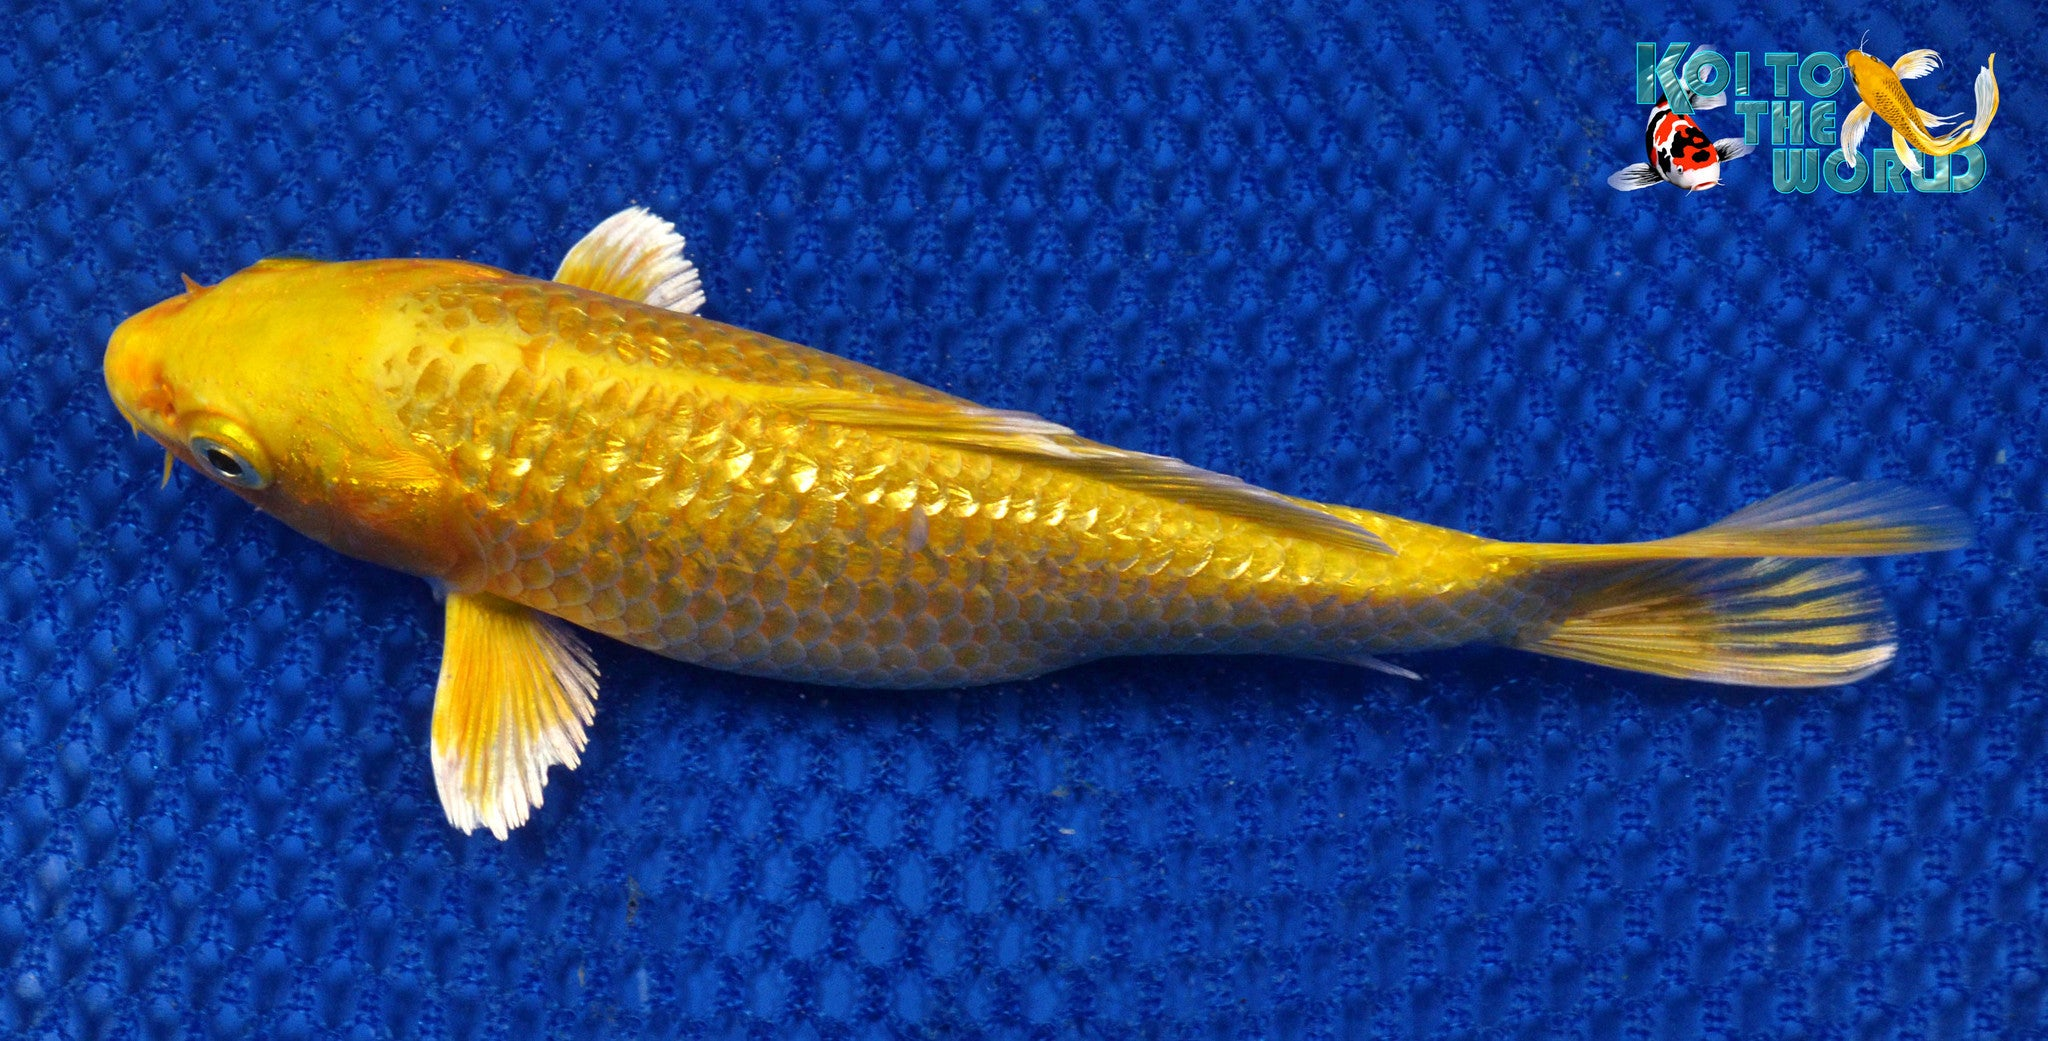 6 5 ginrin yamabuki ogon koi to the world for Yamabuki ogon koi for sale